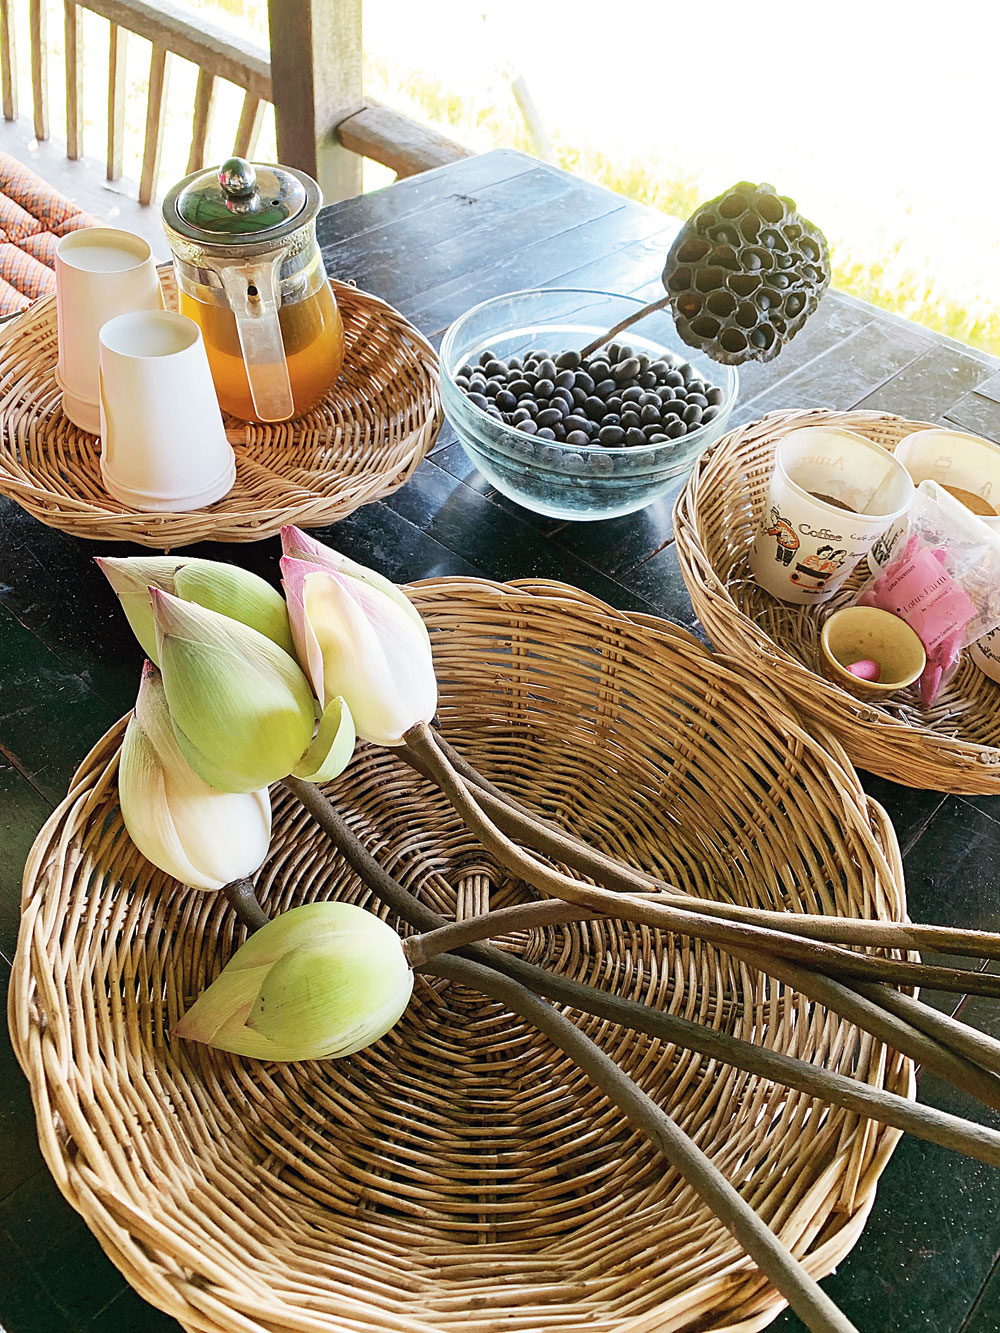 At the Samatoa Project itself, they teach you to make lotus decorations while drinking lotus tea